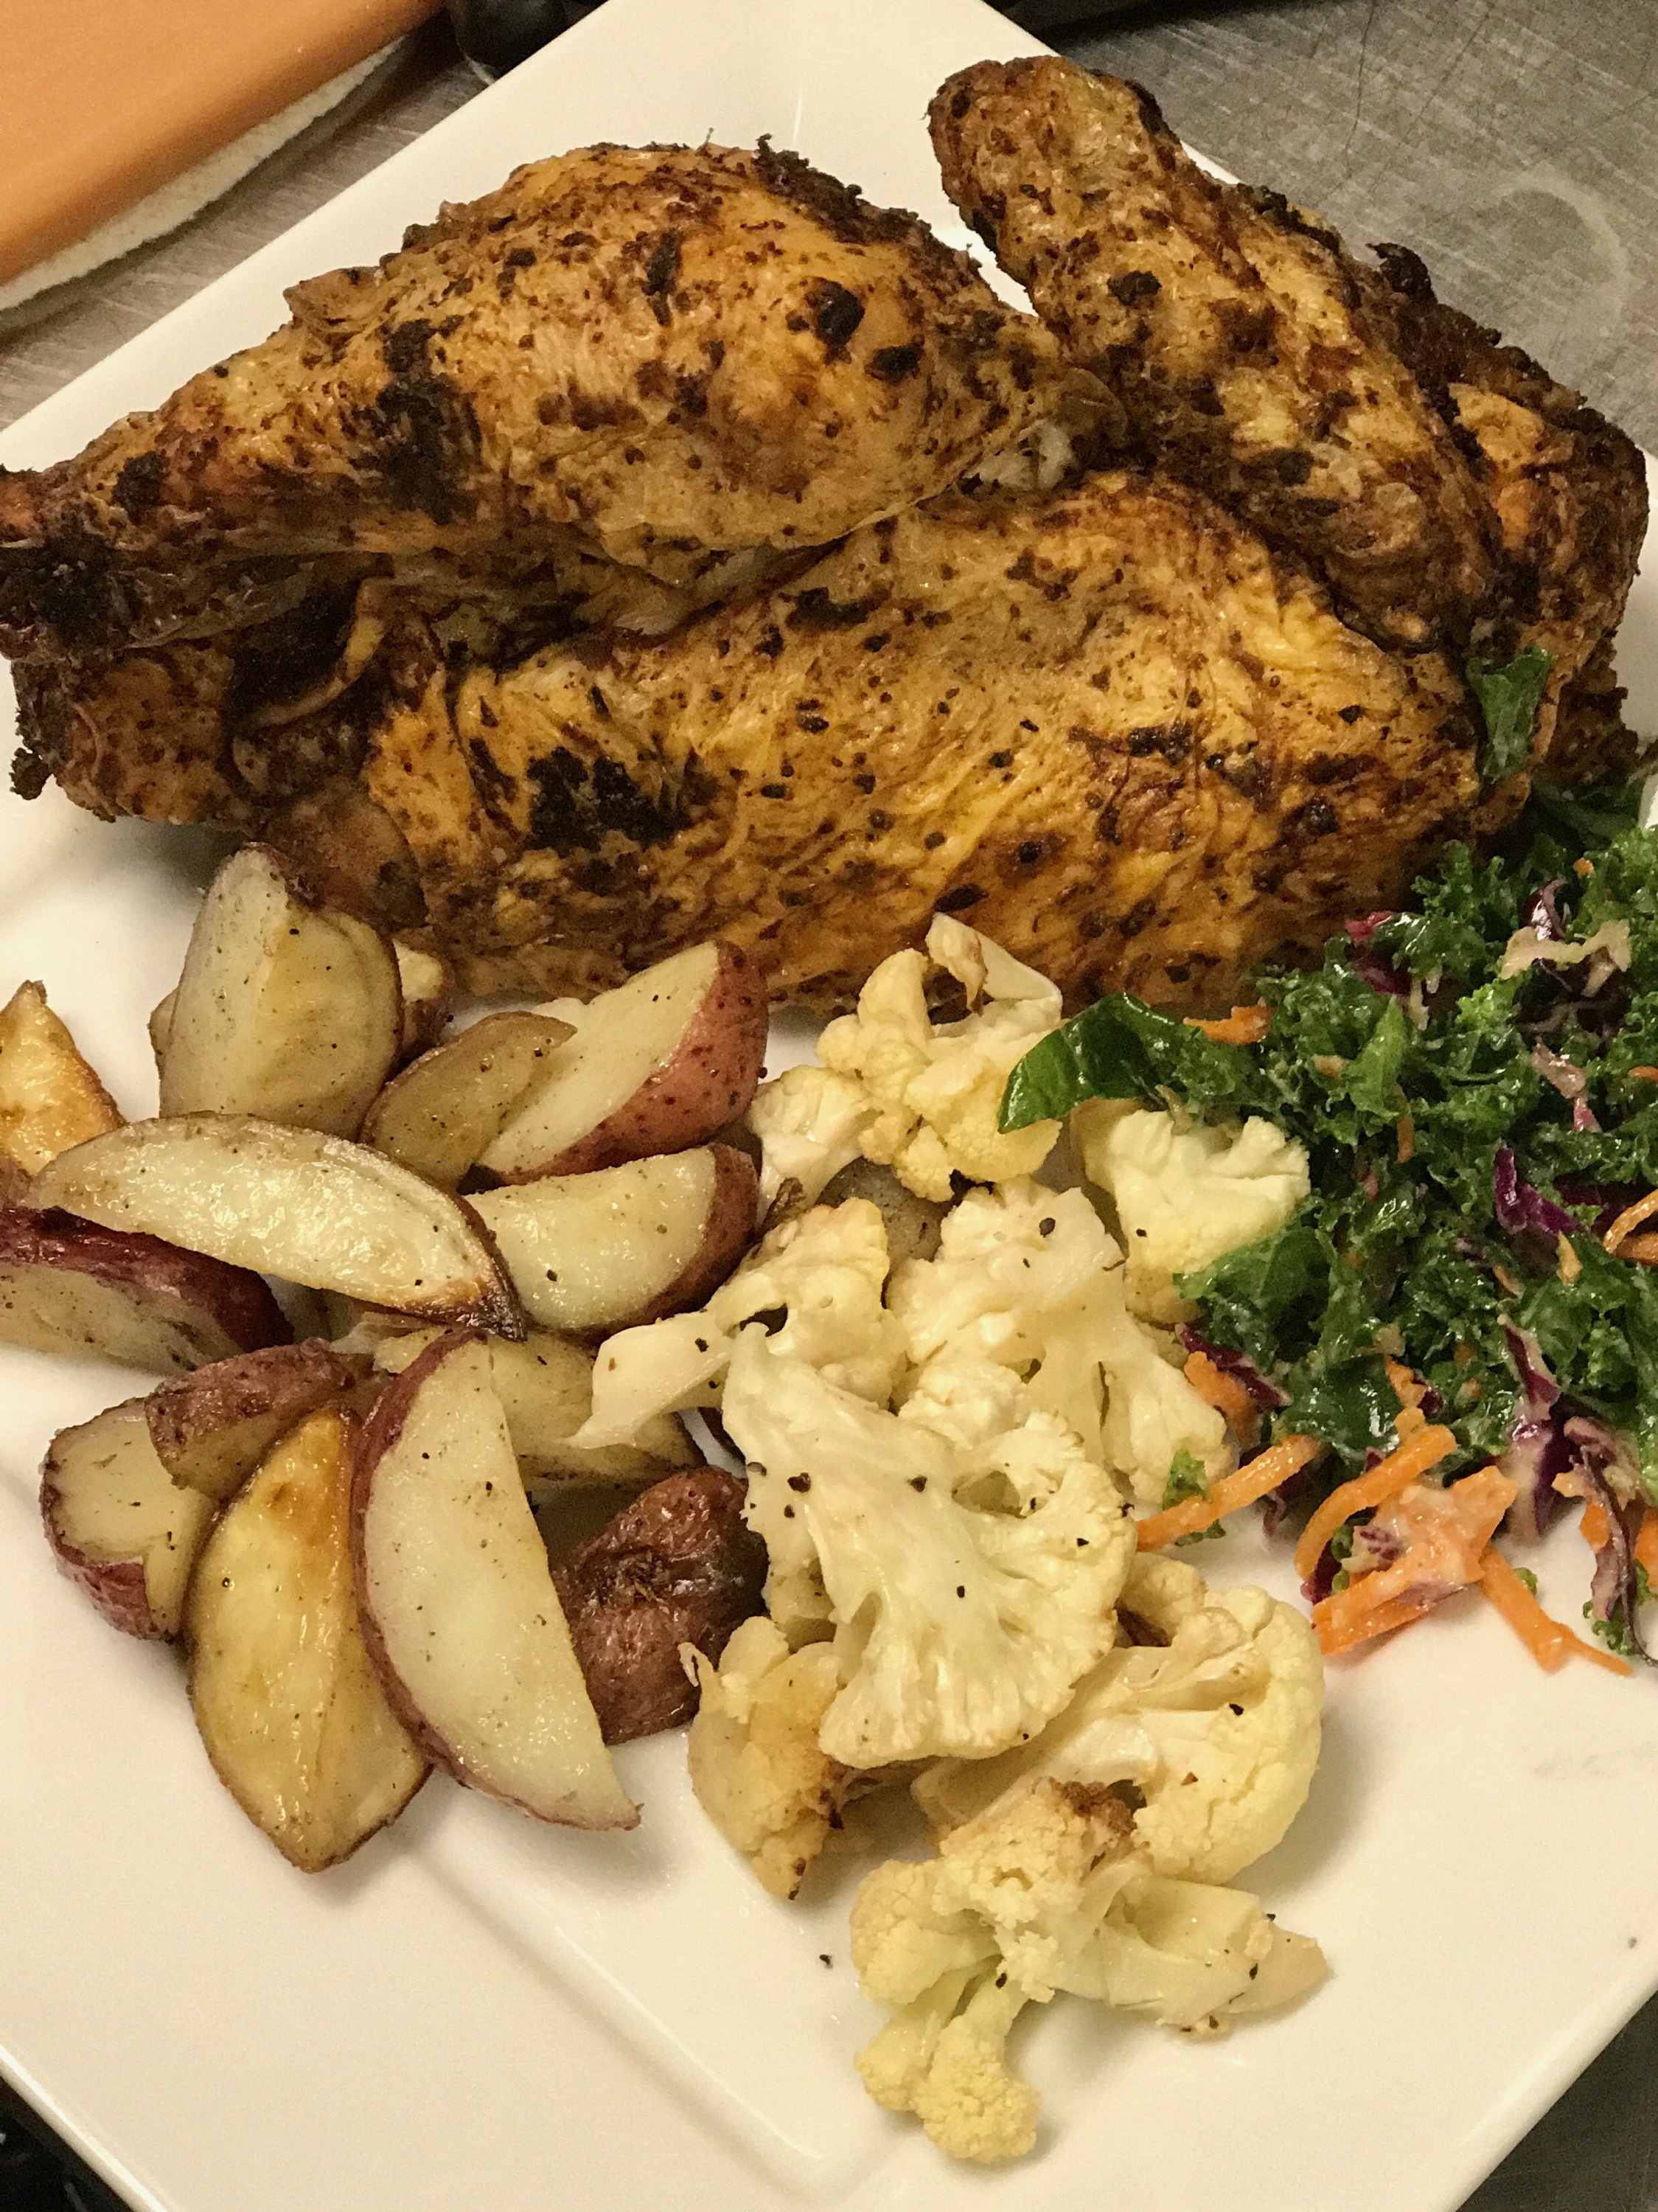 THIS IS OH SO GOOD, WE LOVE IT WITH A BIG GLASS OF PINOT NOIR. Half roasted chicken, roasted fingerling potatoes, seasonal vegetables, jerk sauce, romesco sauce